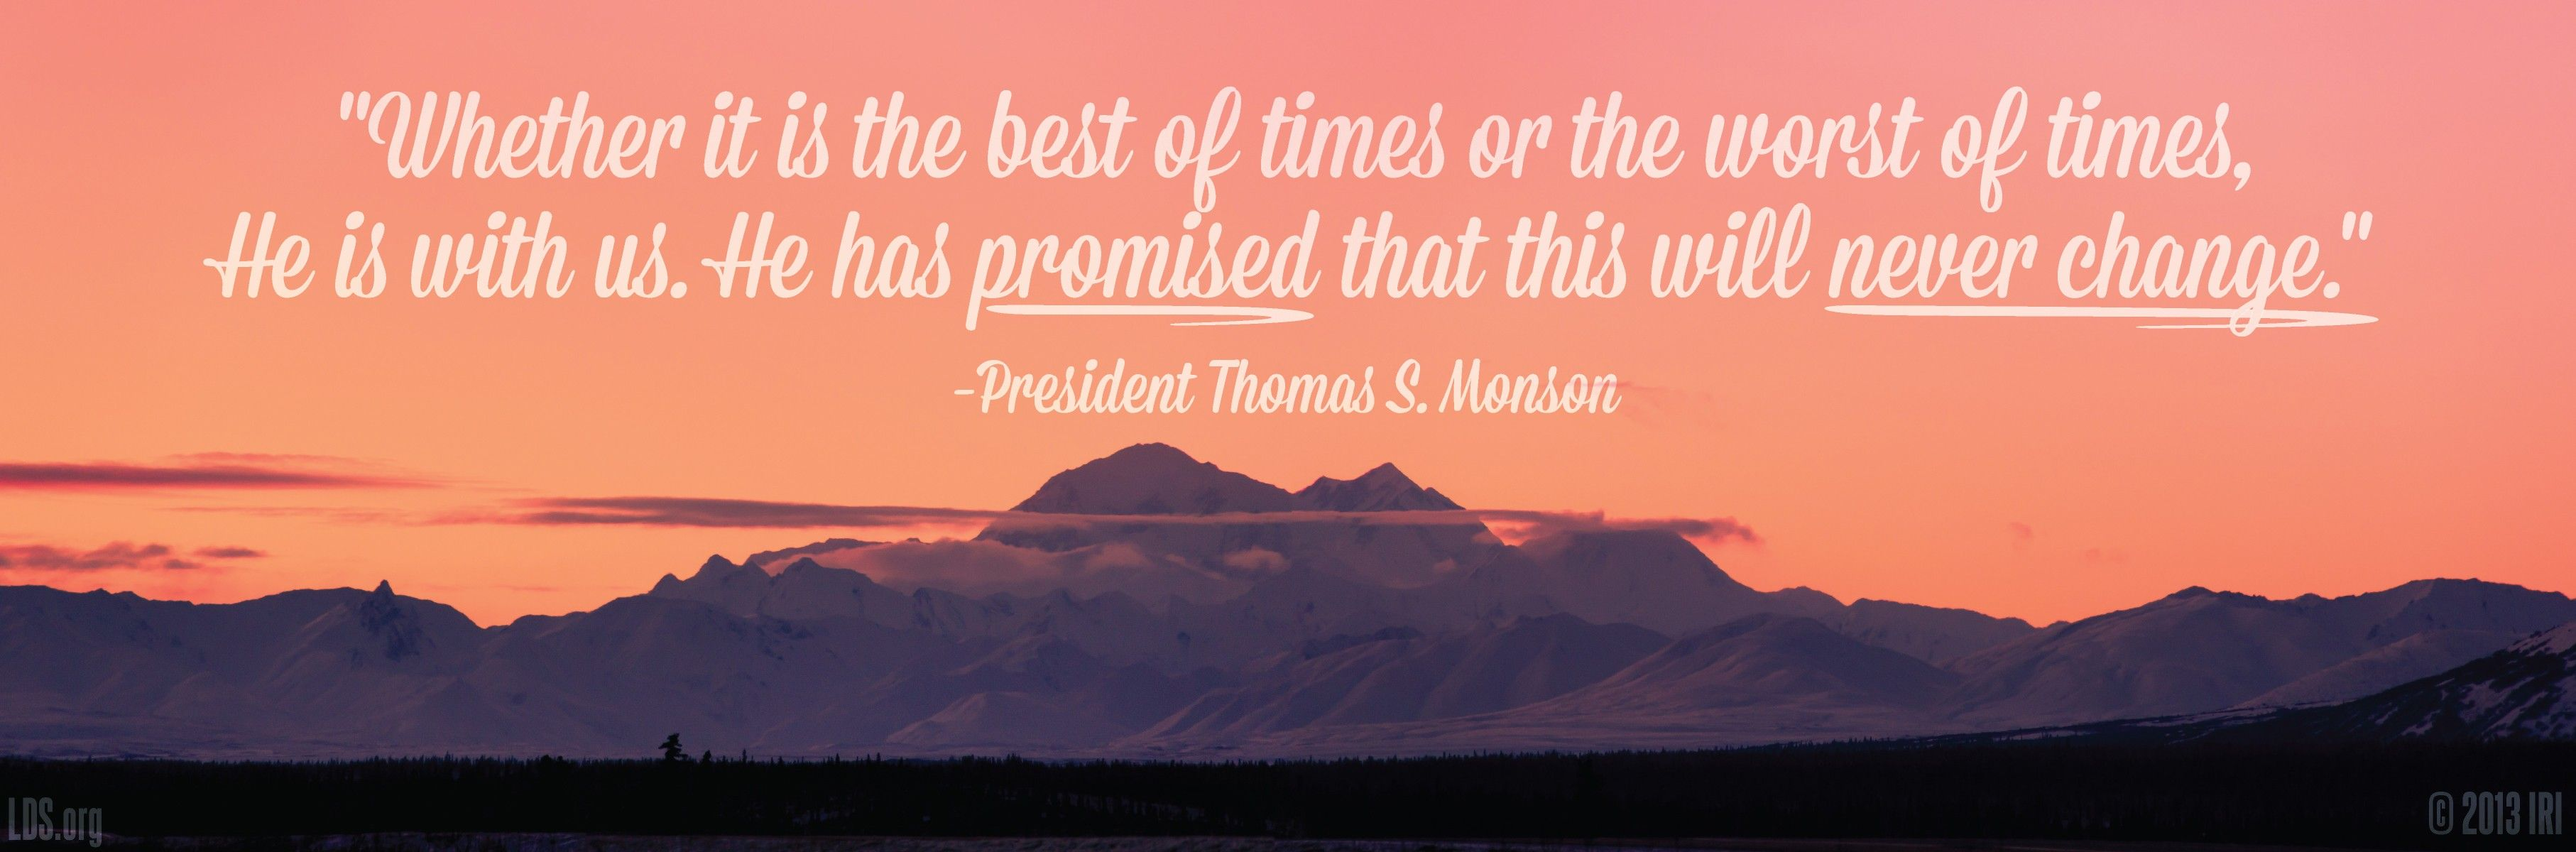 """""""Whether it is the best of times or the worst of times, He is with us. He has promised that this will never change.""""—President Thomas S. Monson, """"I Will Not Fail Thee, nor Forsake Thee"""""""